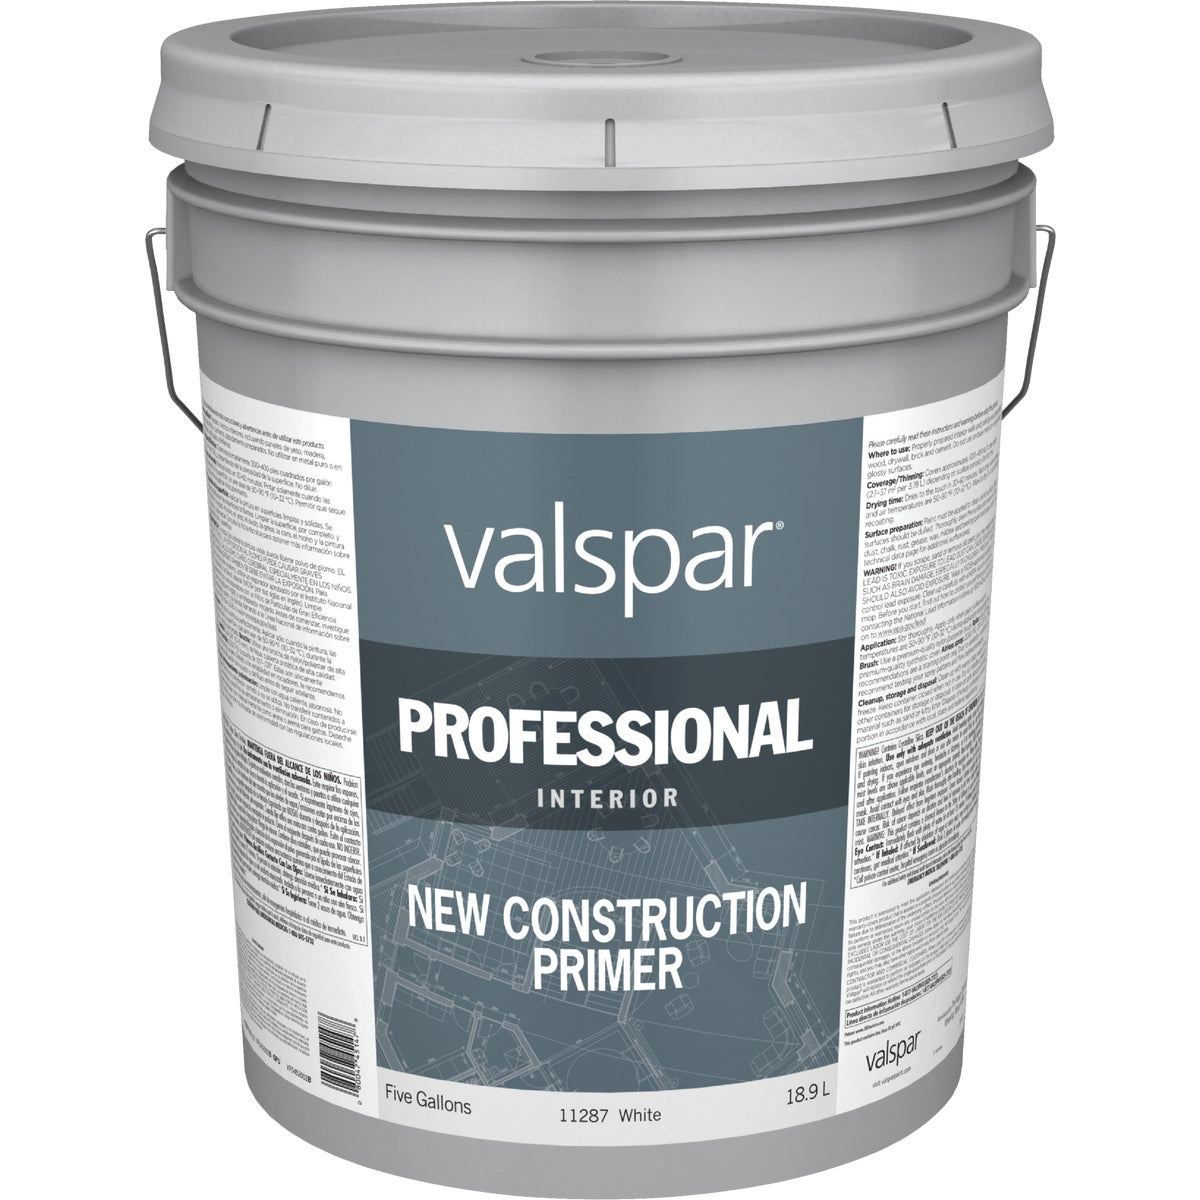 INT CONSTRUCTION PRIMER - 045.0011287.008 by Valspar Corp